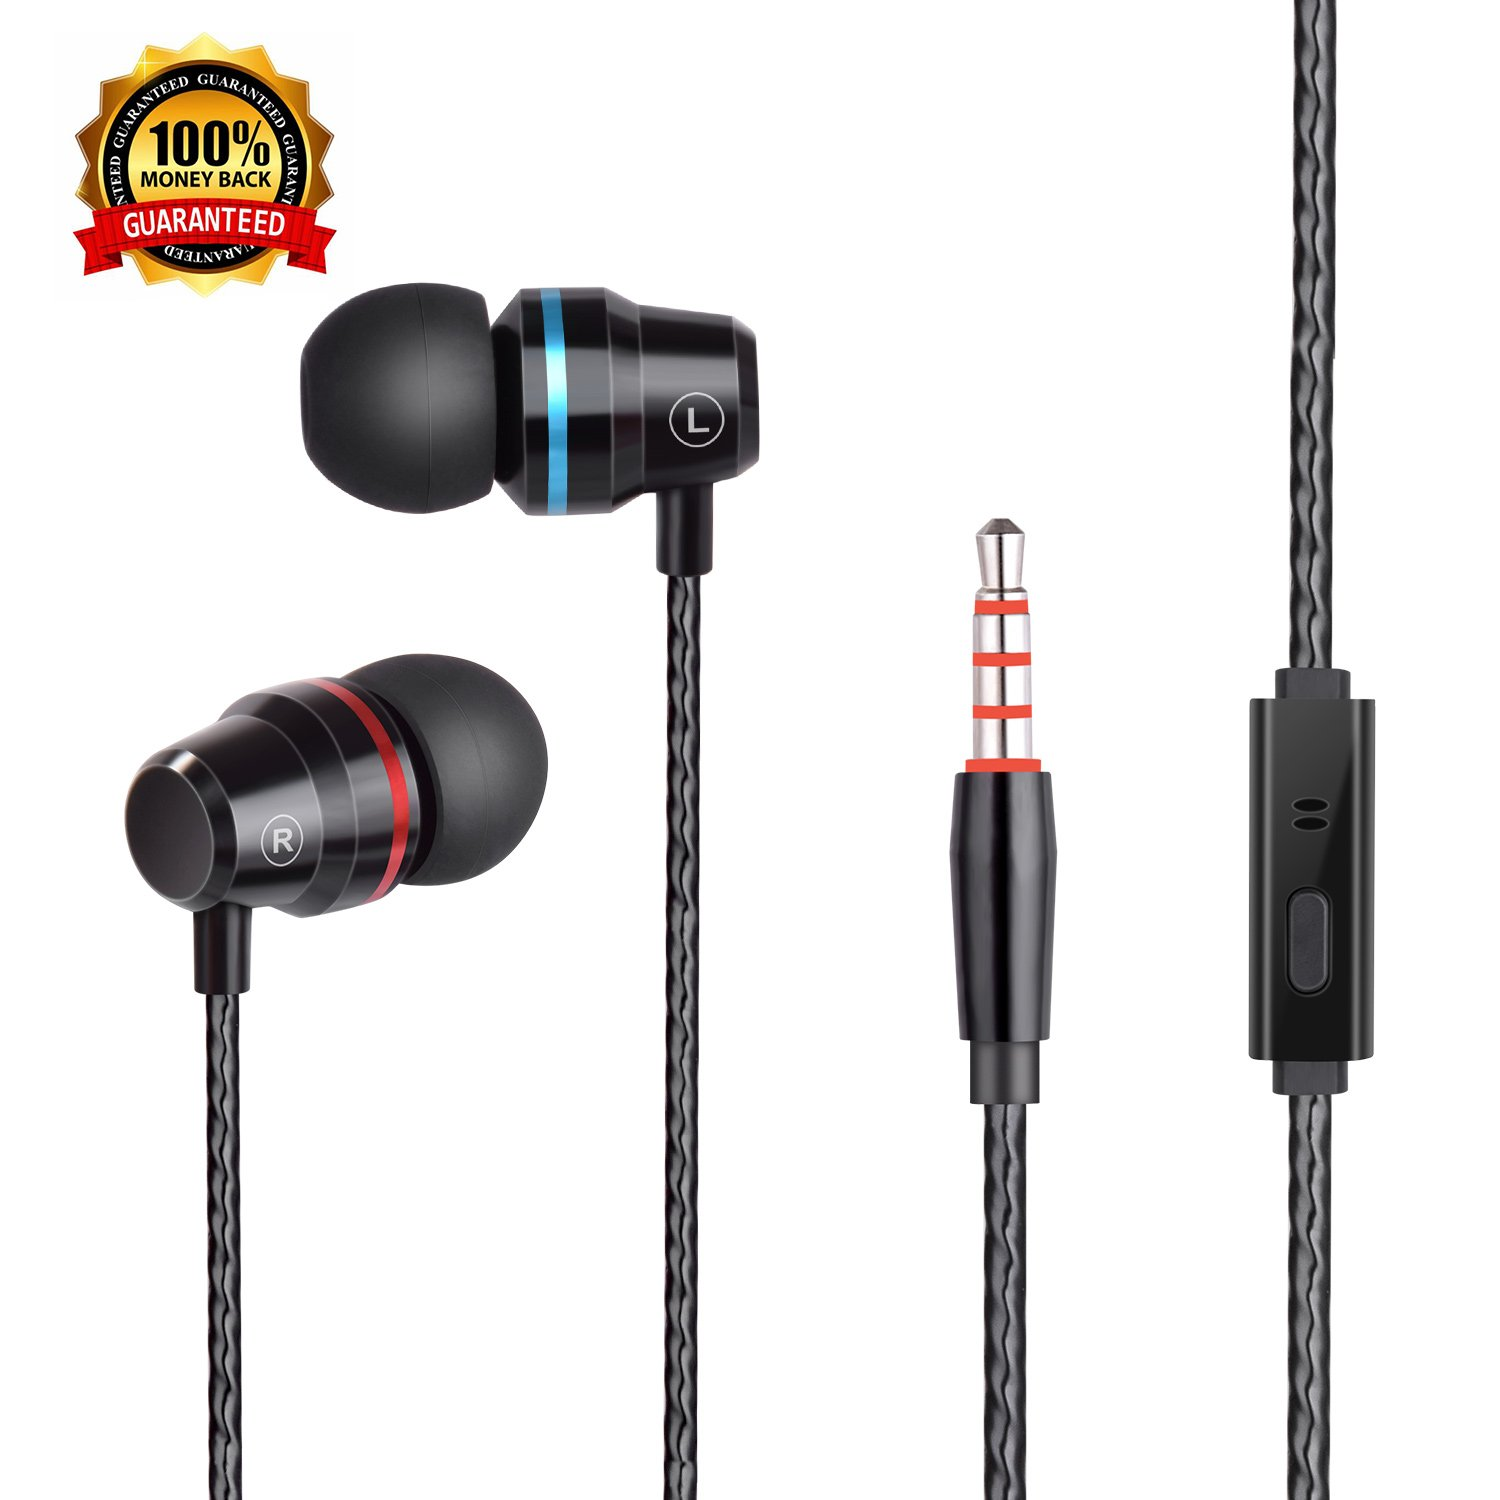 bcc06e27040 Earbuds Headphones Stereo In-ear Earphones with Microphone Mic Wired earbuds  Waterproof Earphone for iPhone